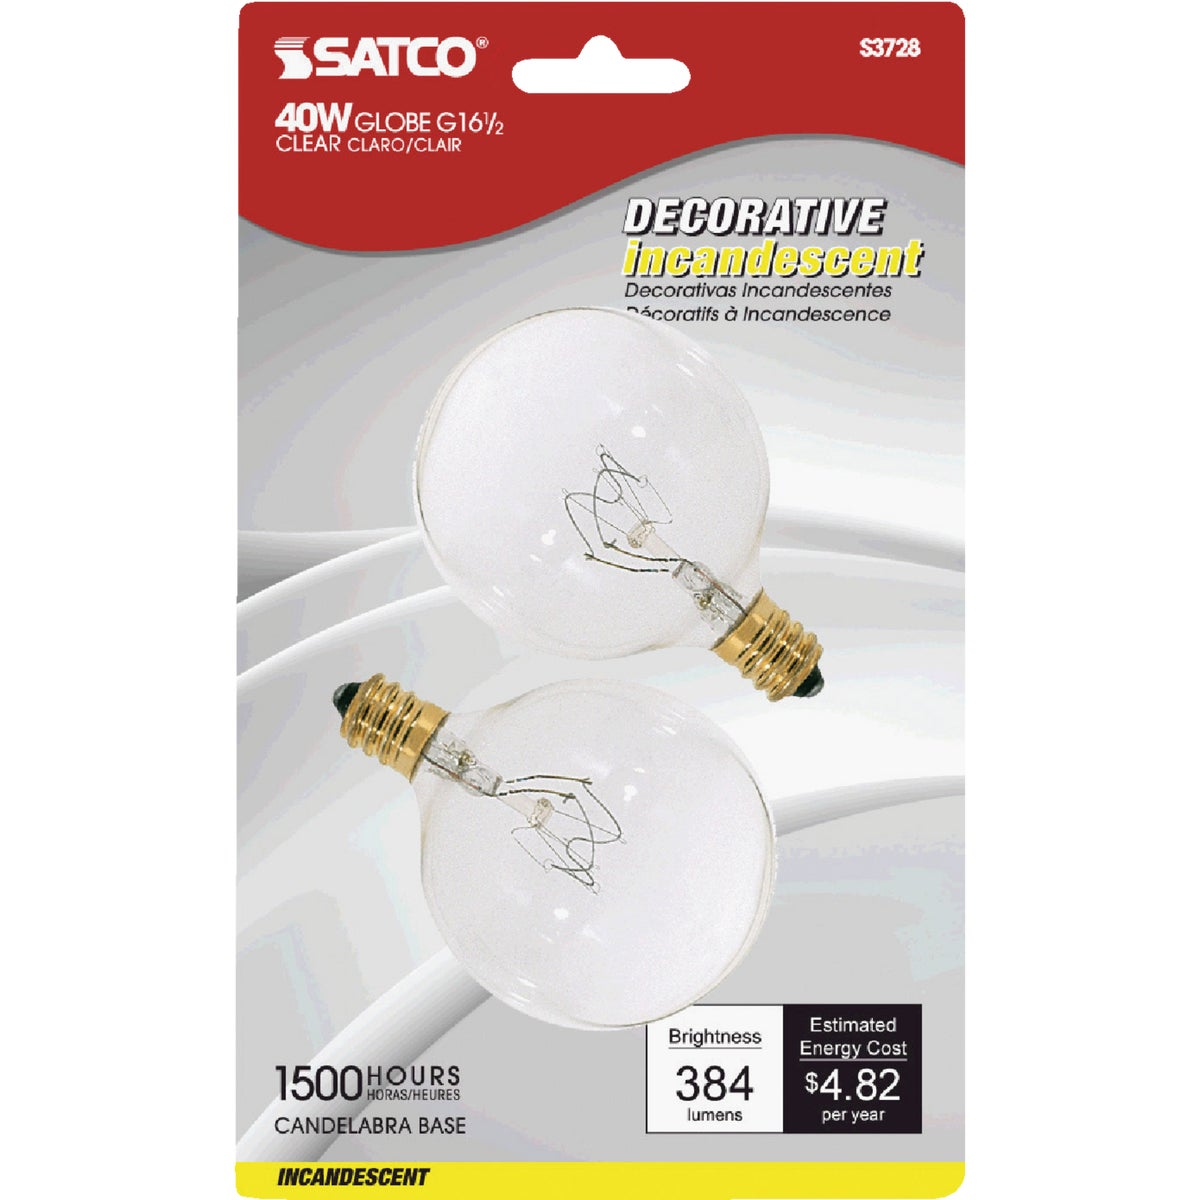 40W CLR 2-1/16GLOBE BULB - 17730 by G E Lighting